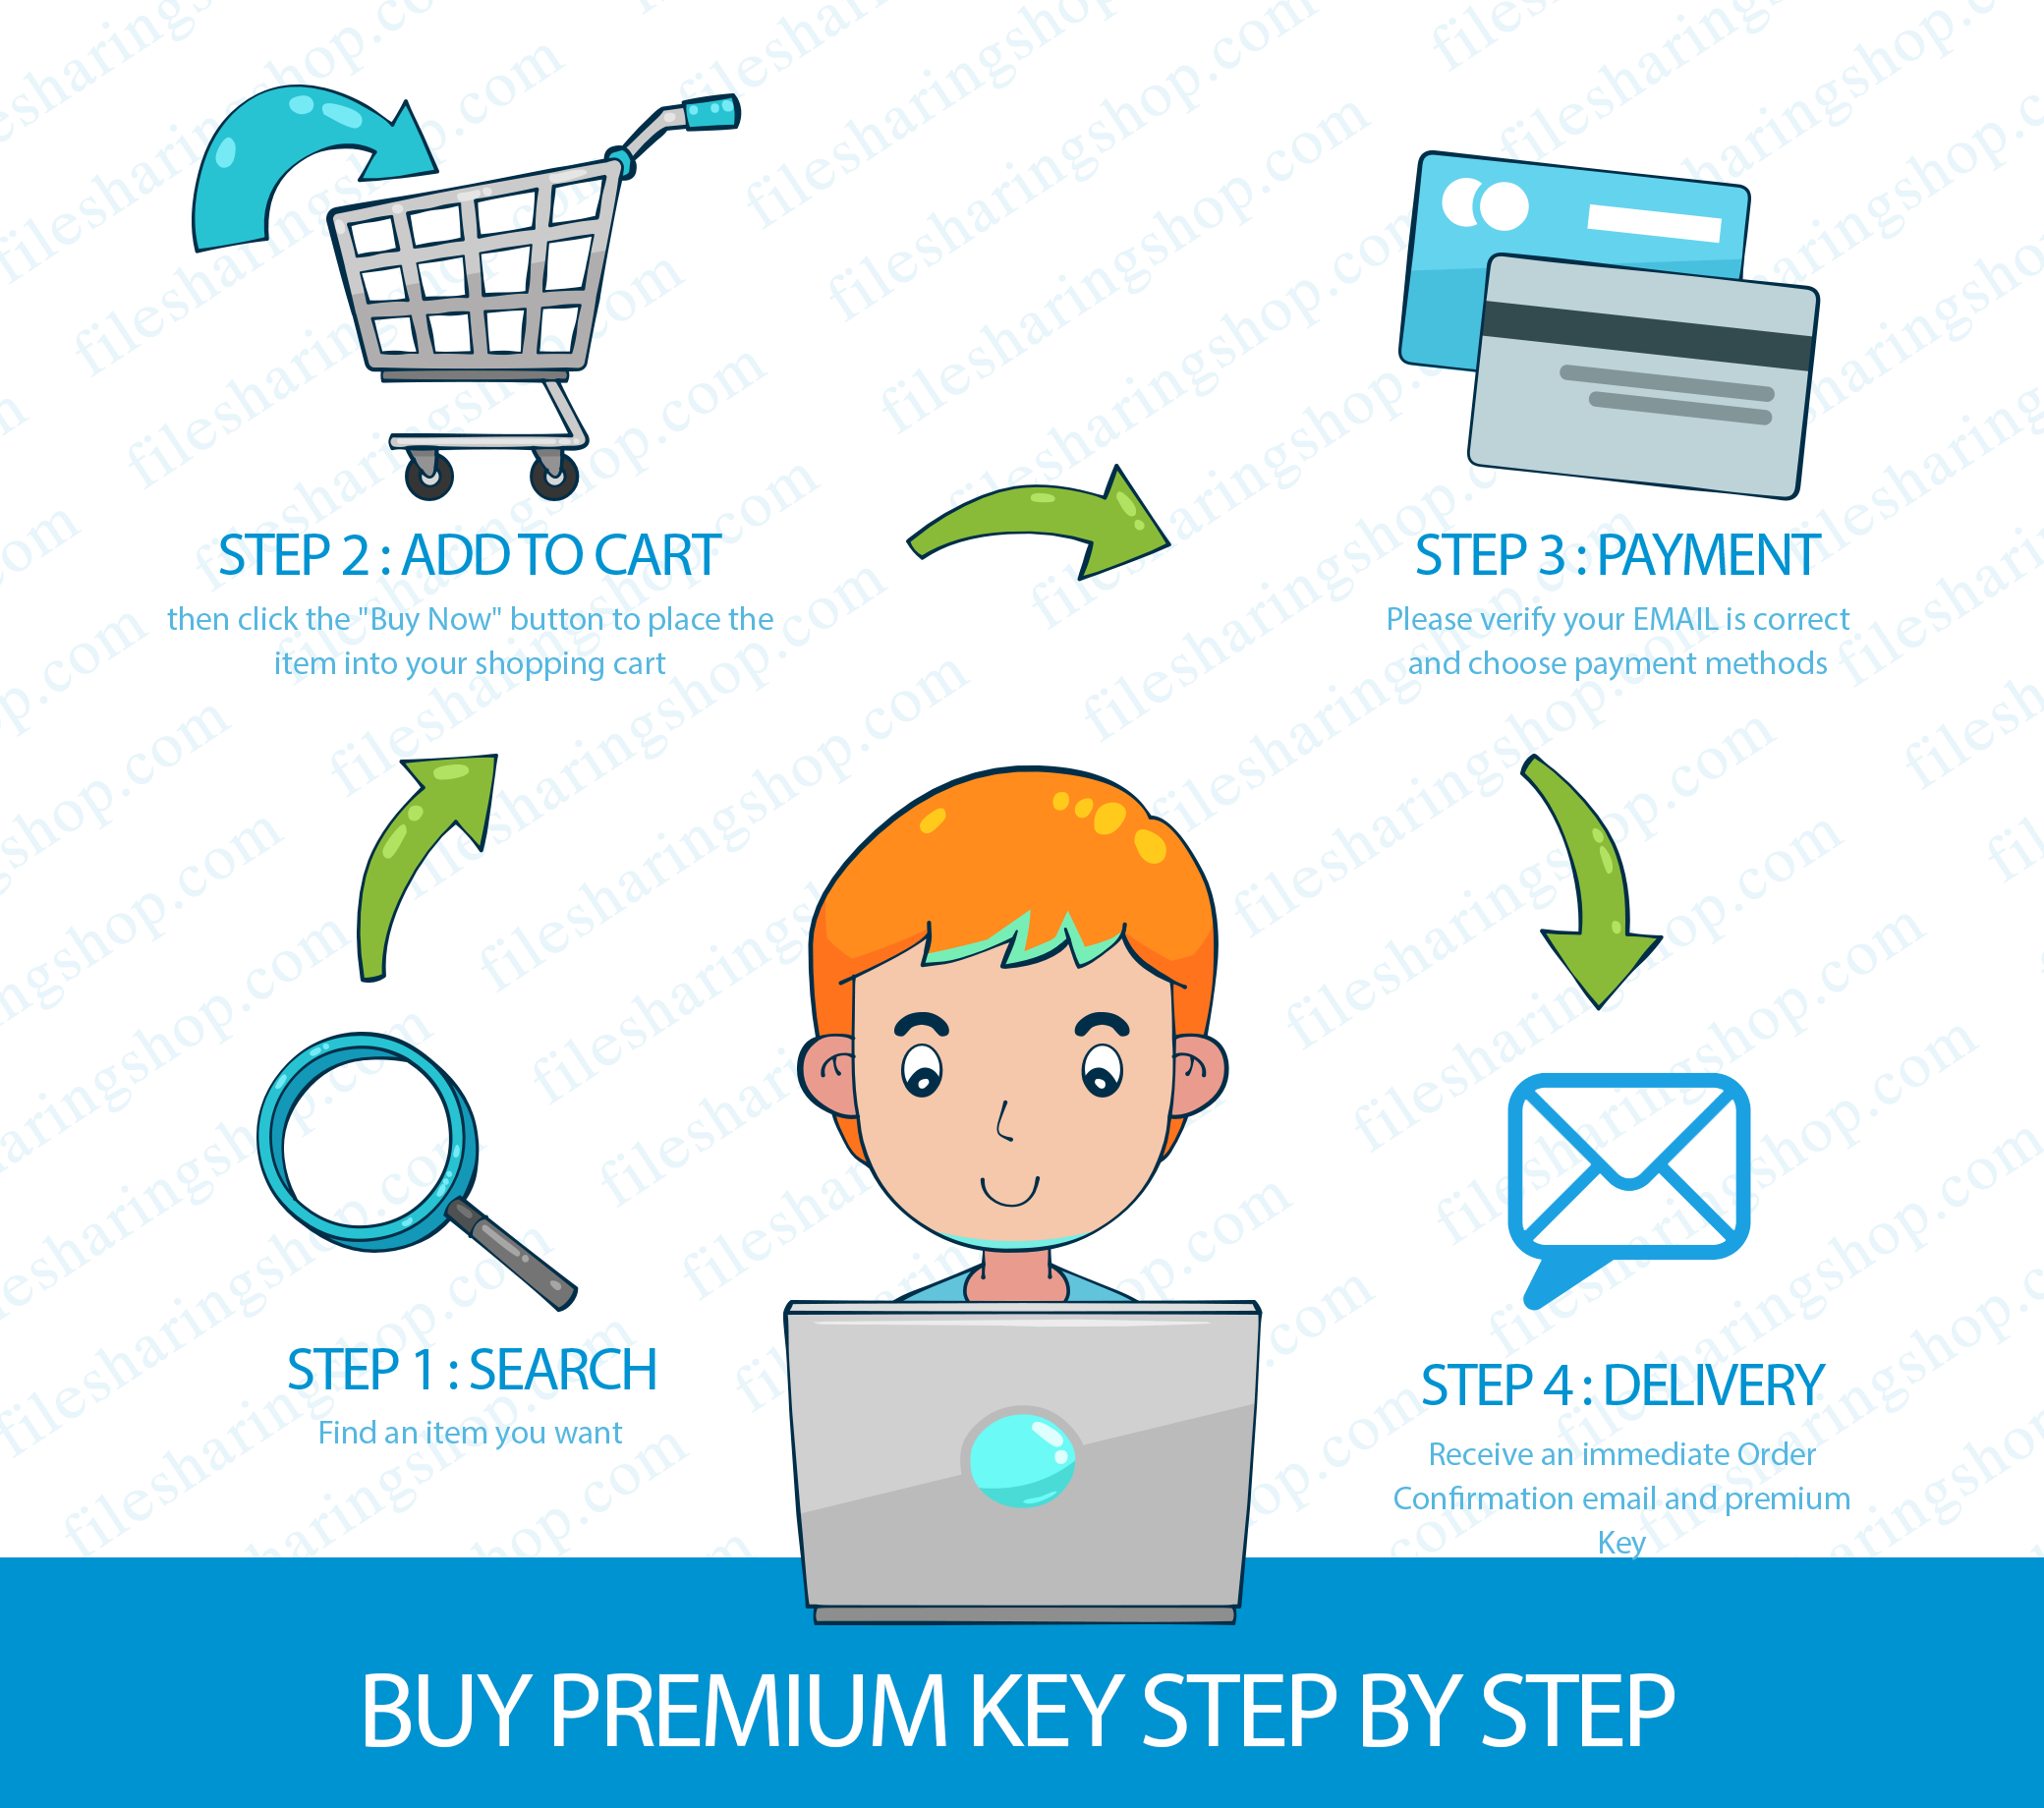 HOW TO BUY MOUNTFILE PREMIUM